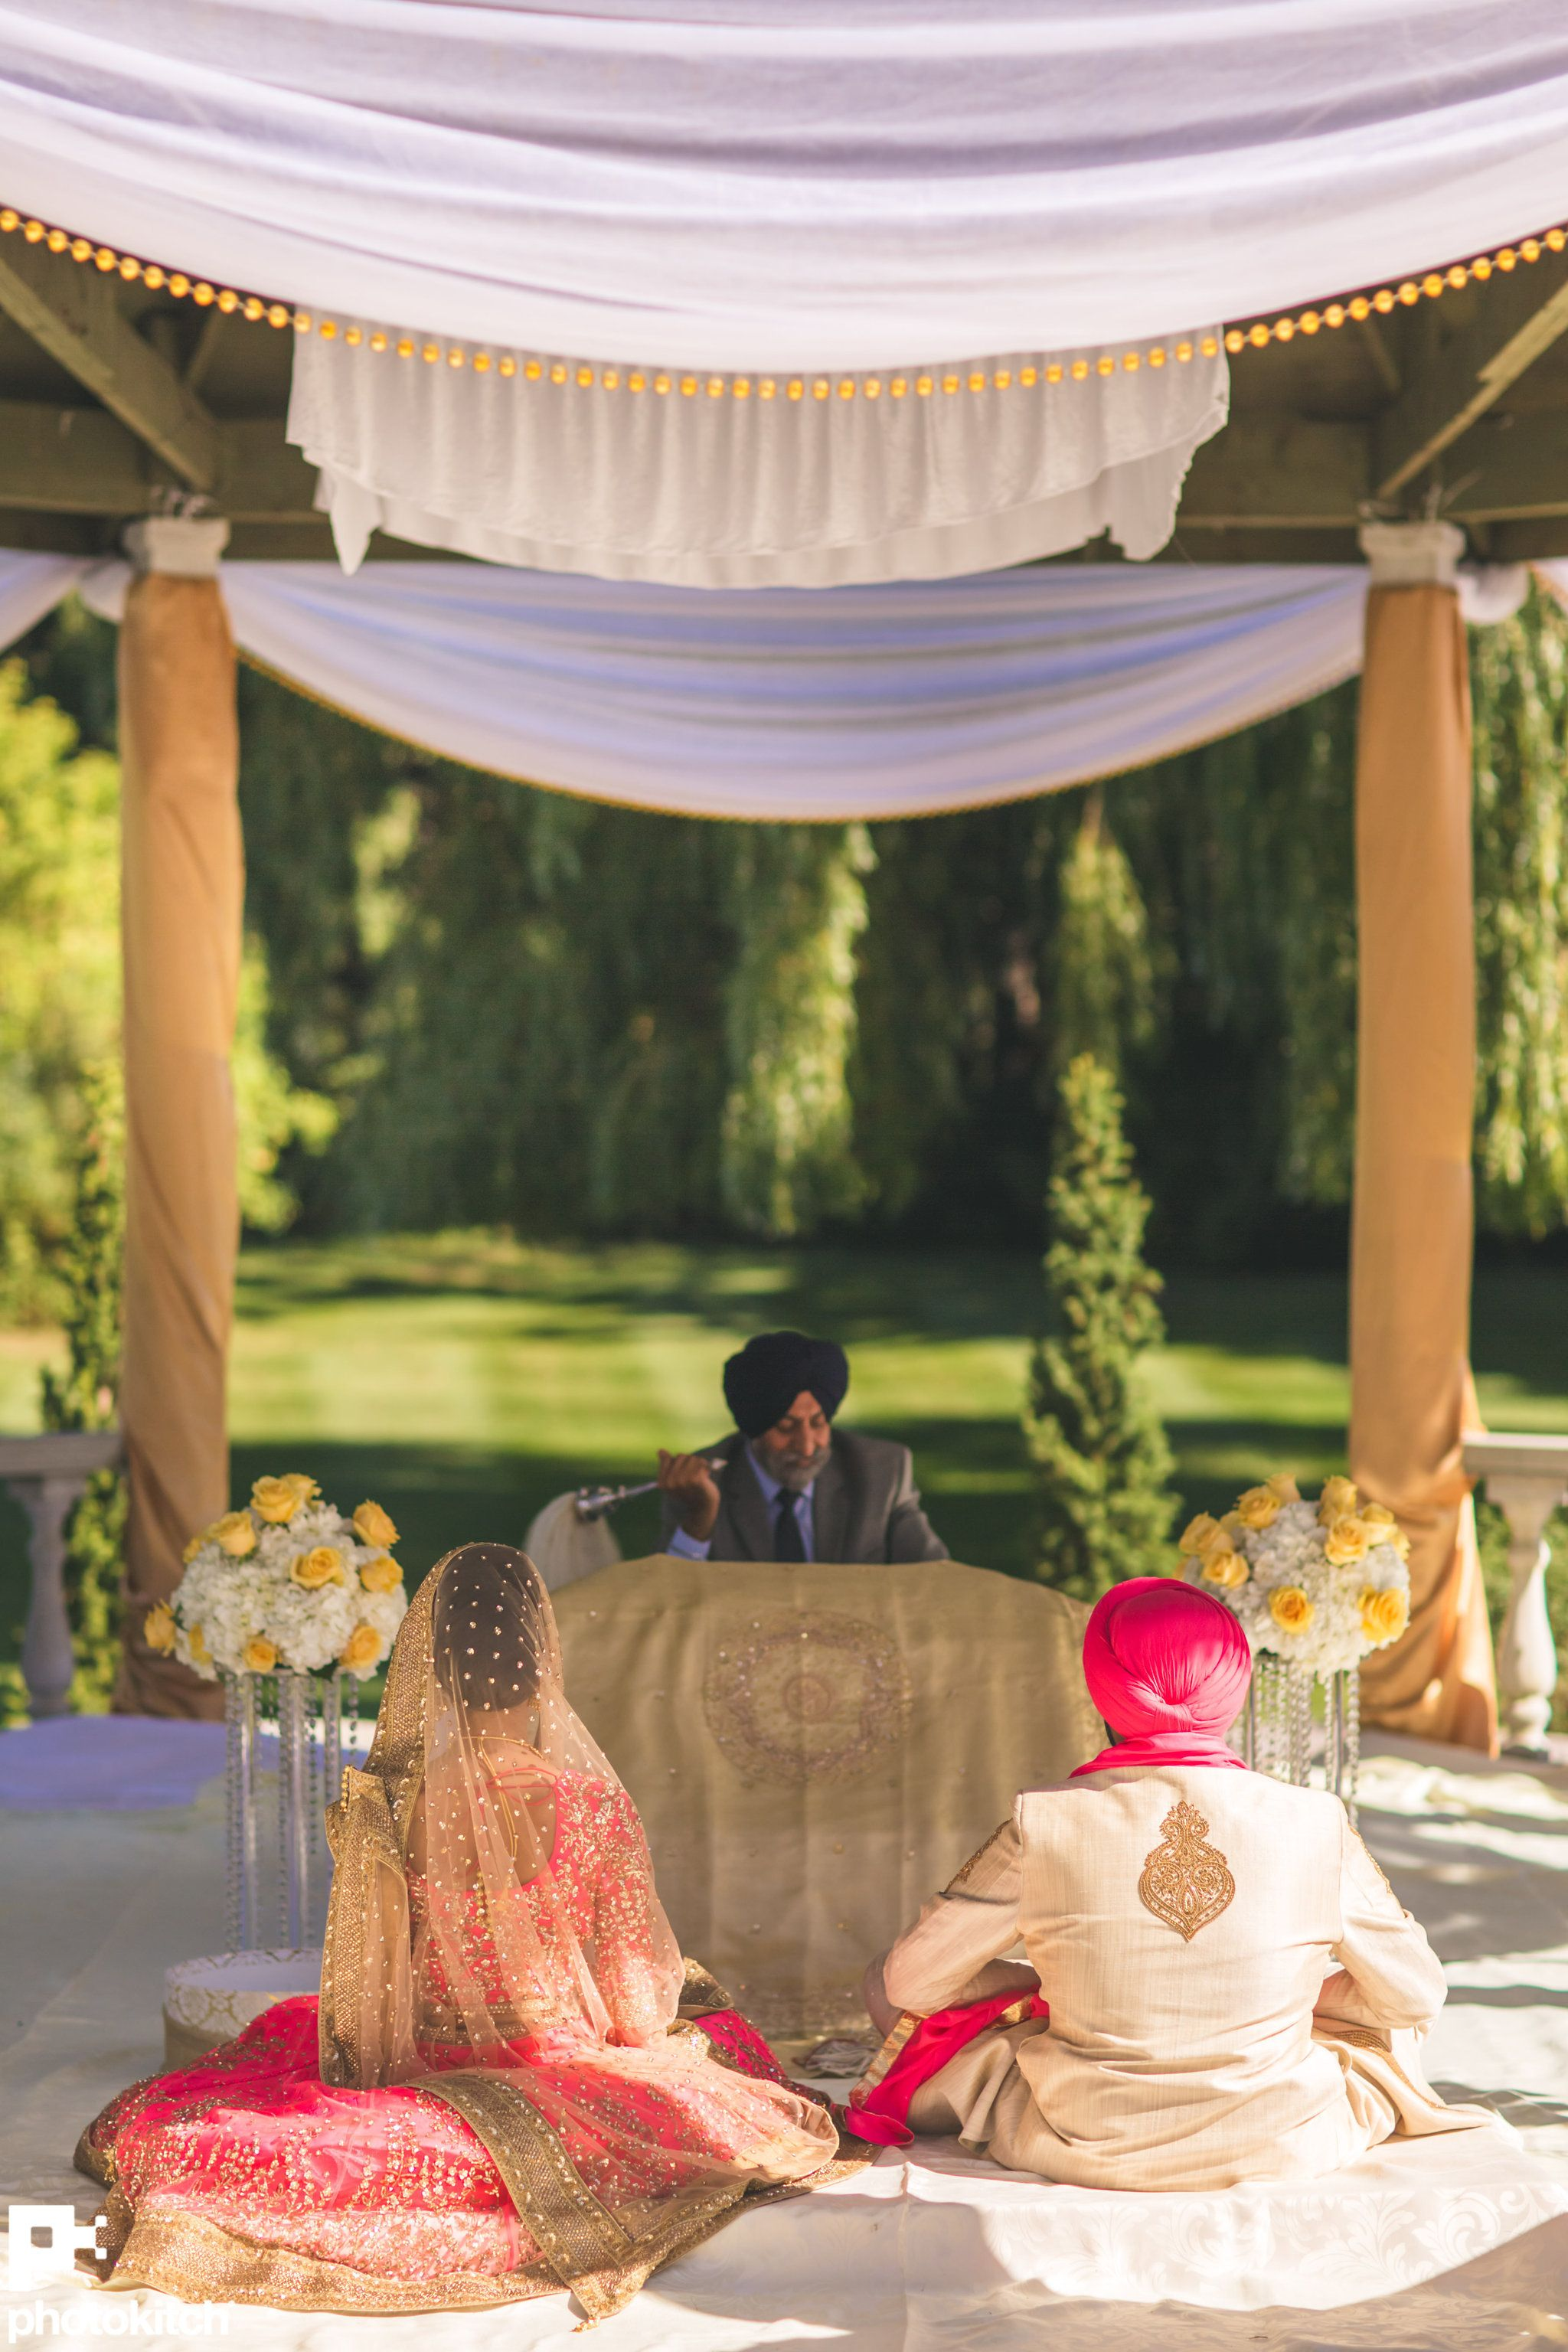 PhotoKitch photographers are experienced in Hindu Sikh